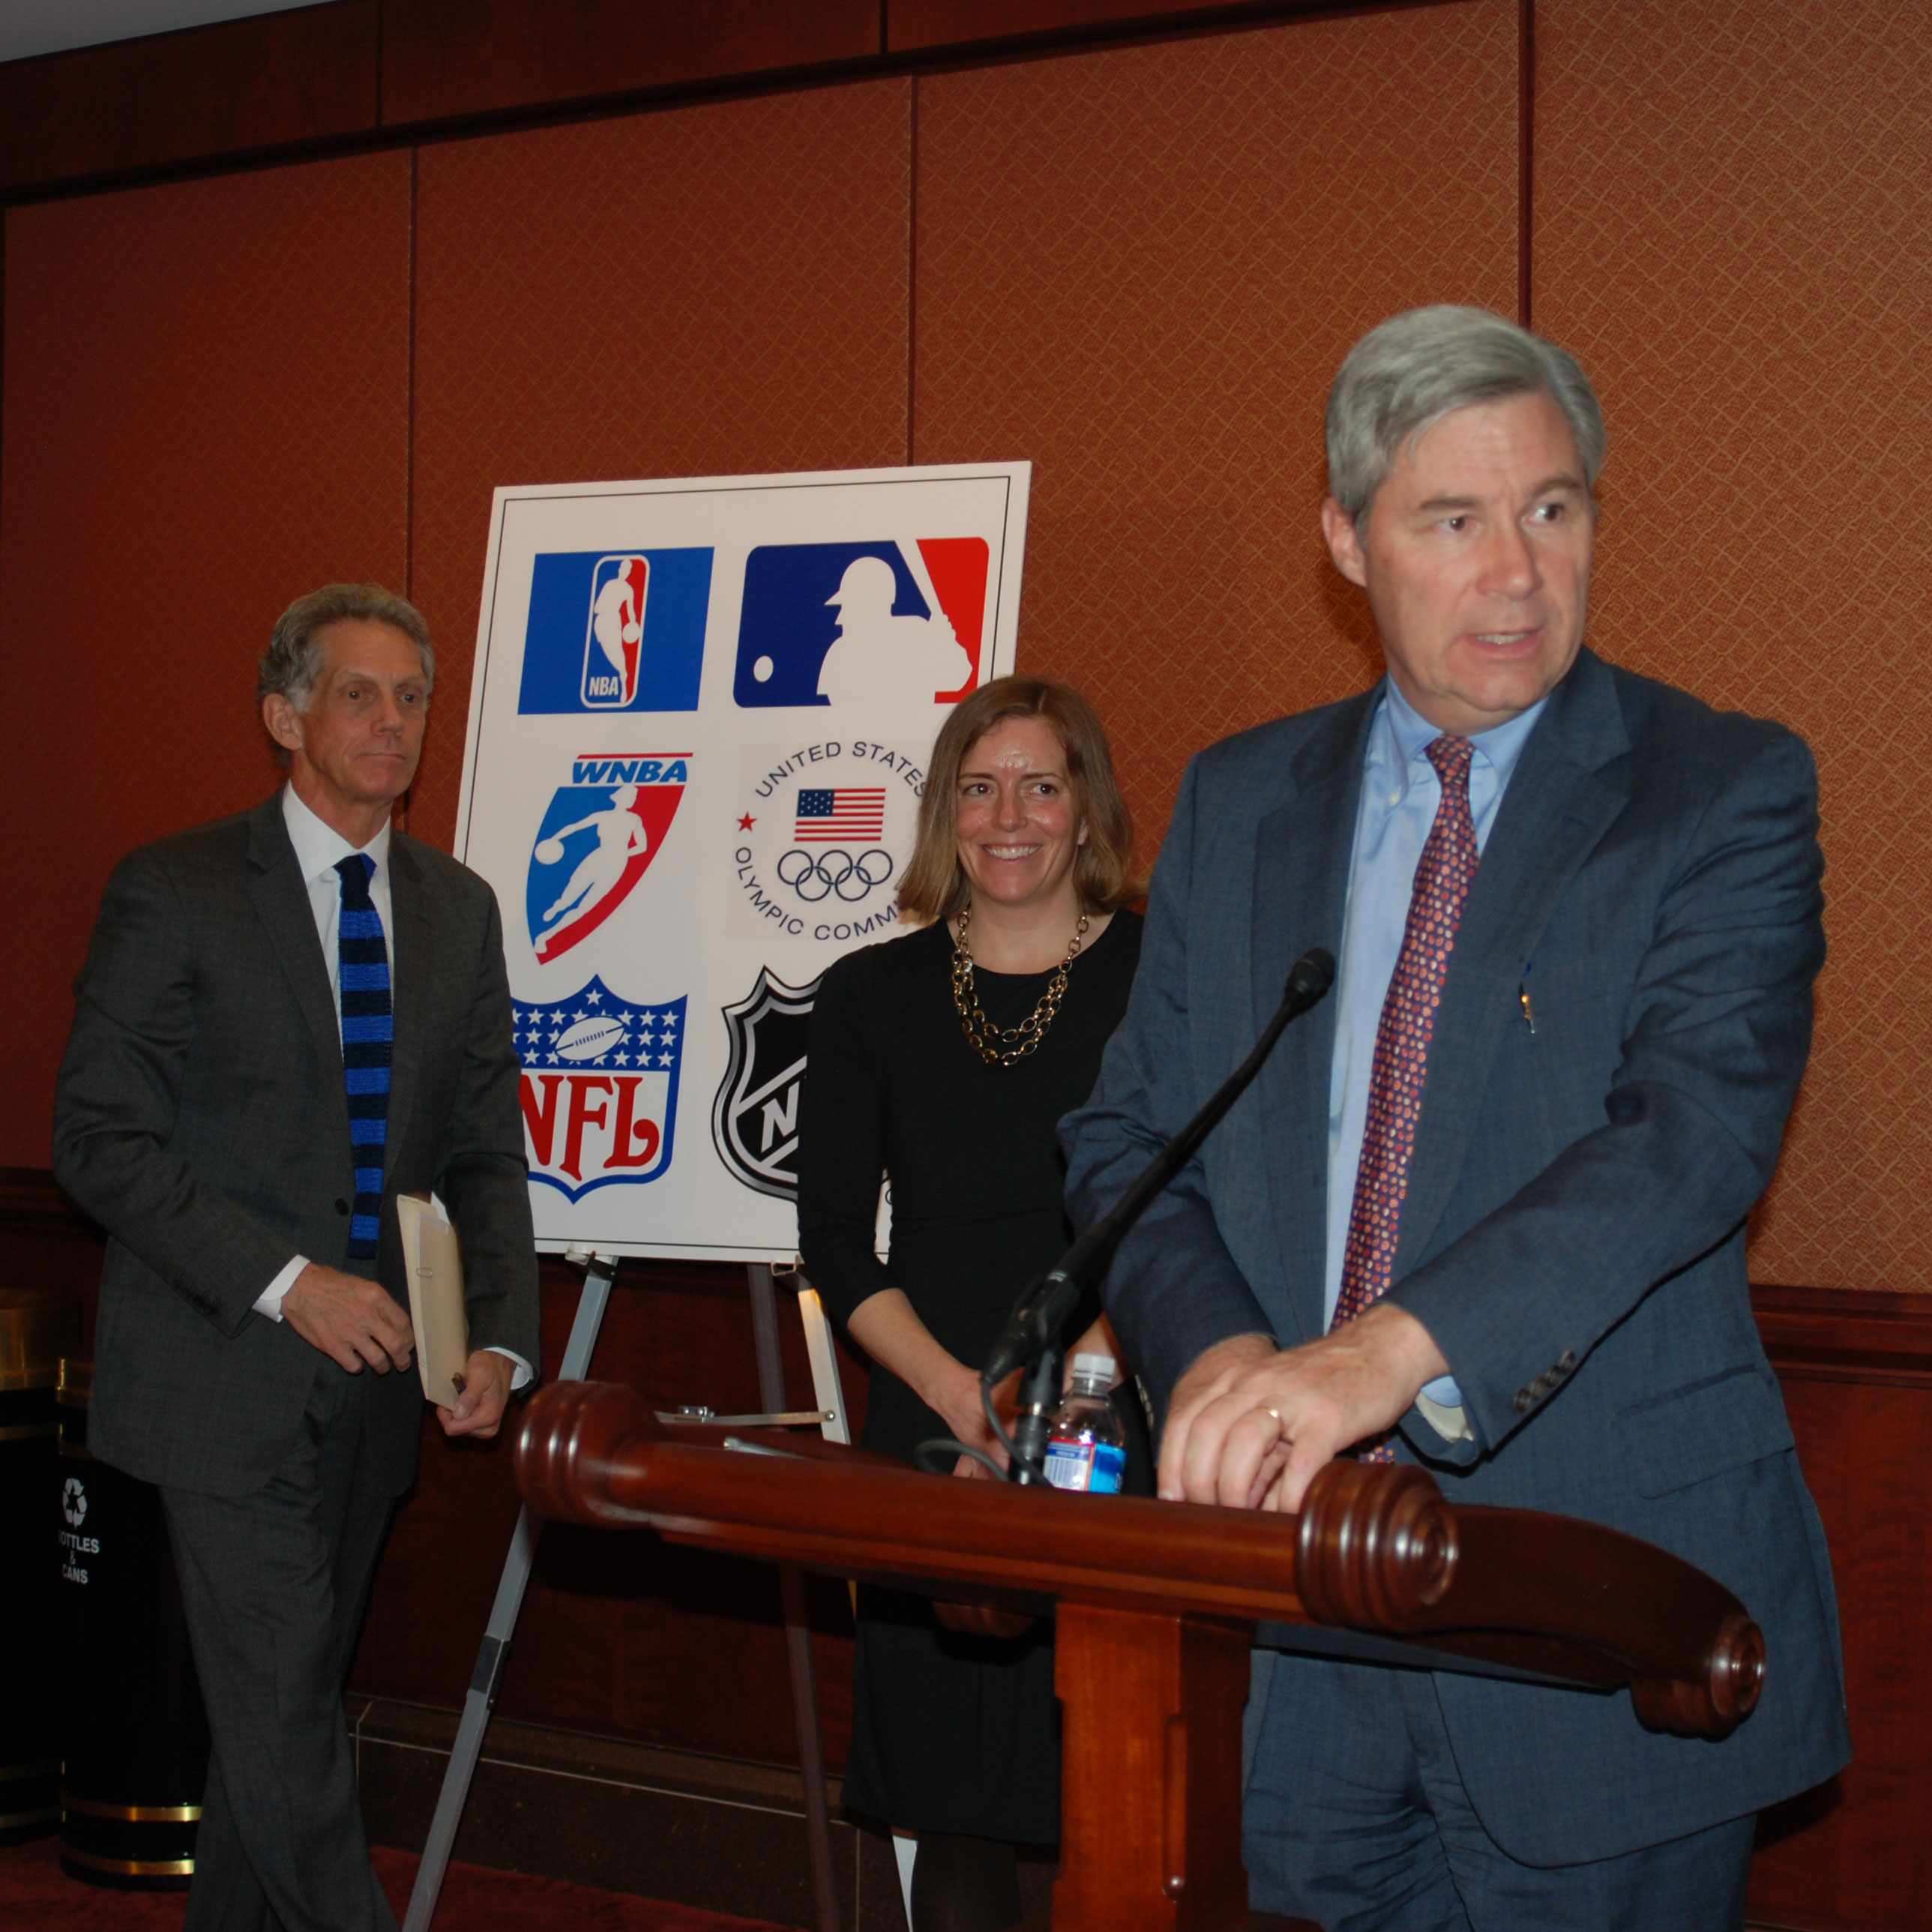 Senator Whitehouse, pictured here with representatives from the MLB and the US Olympic Committee